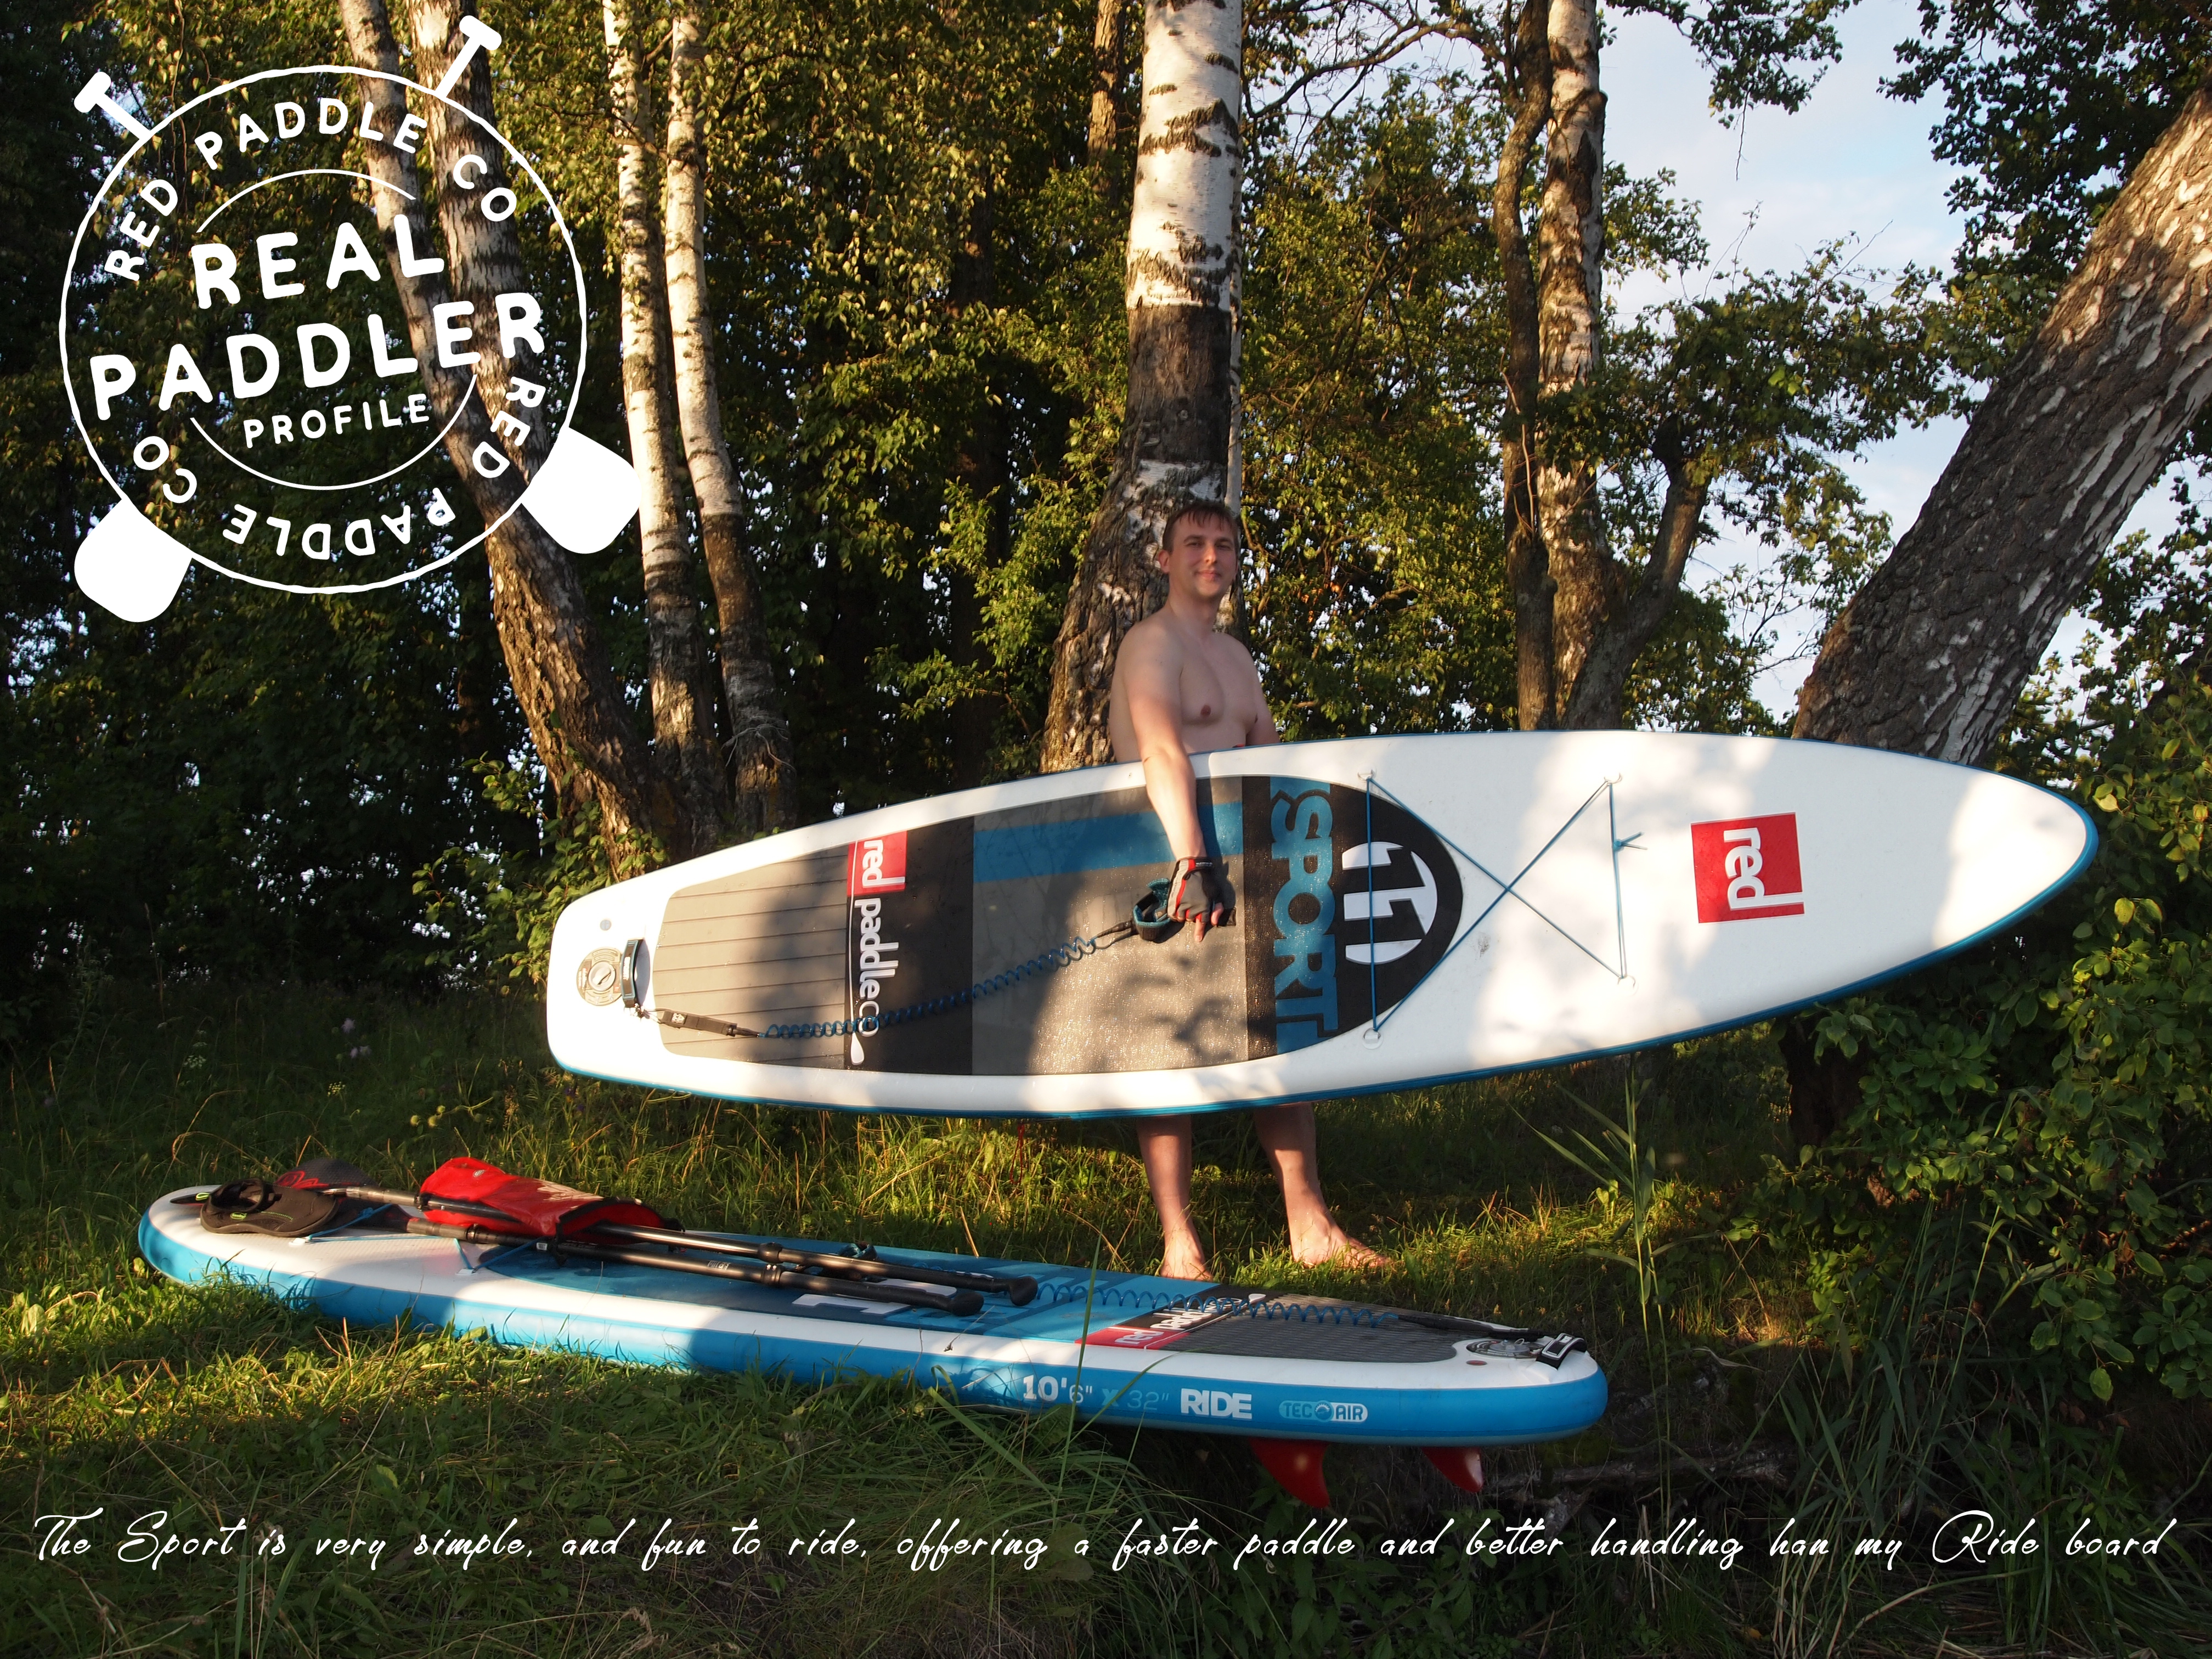 Man holding inflatable paddle board